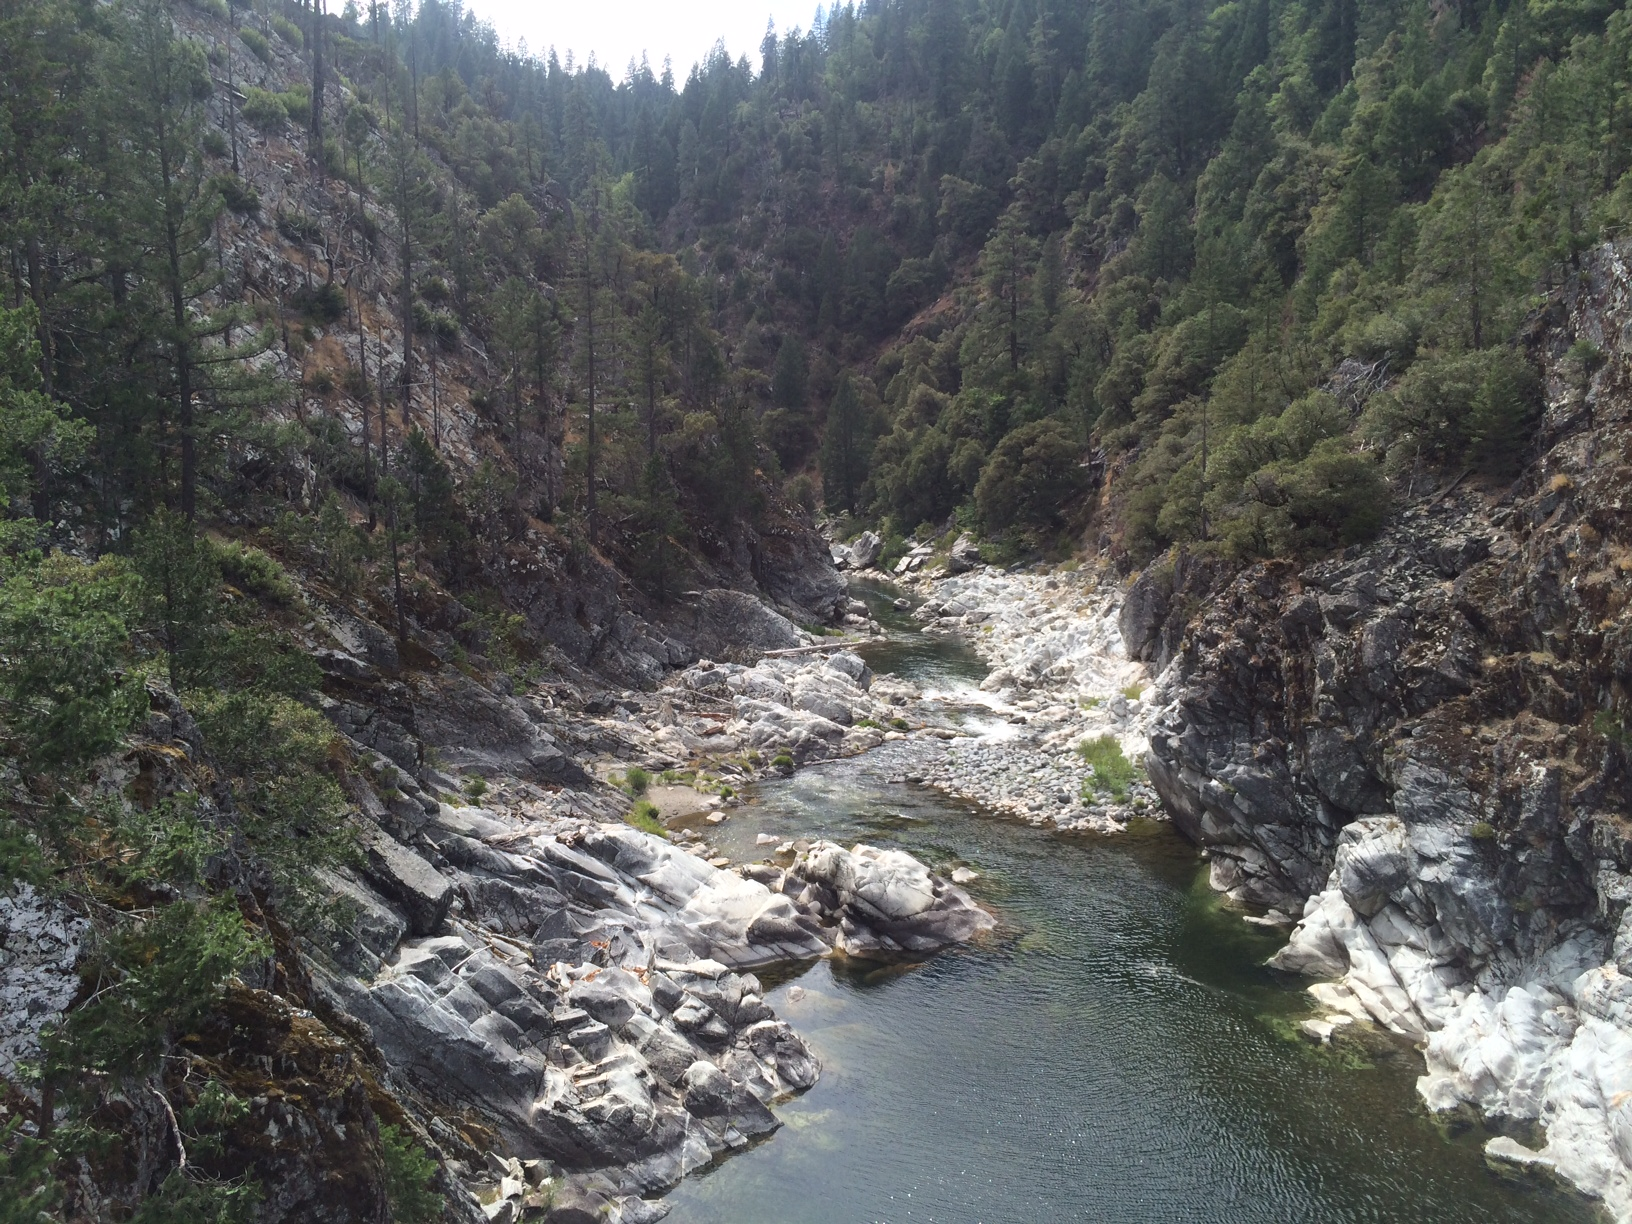 West Fork of the Feather River